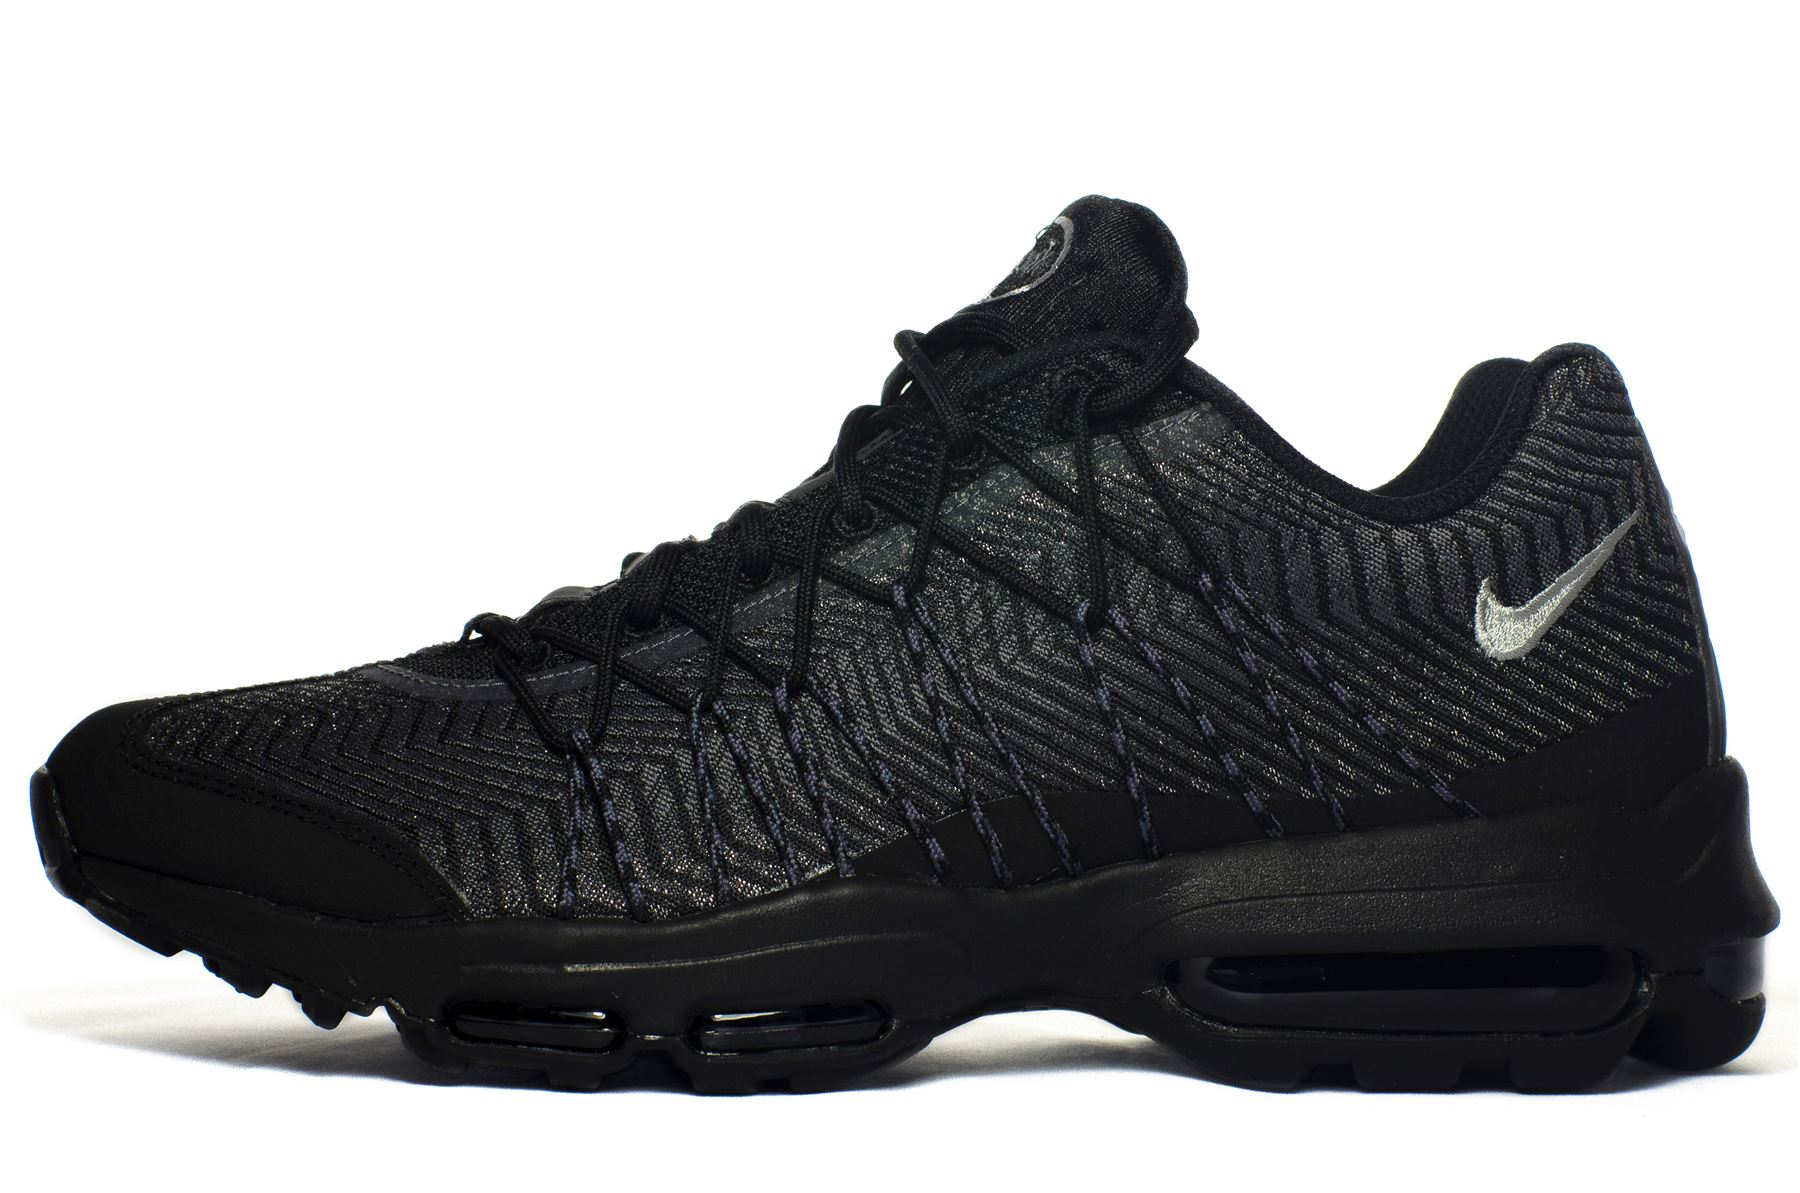 quality design d62f1 019ff air max 95 black cats Tiempo genio leather fg boot calender with real nike  jr.